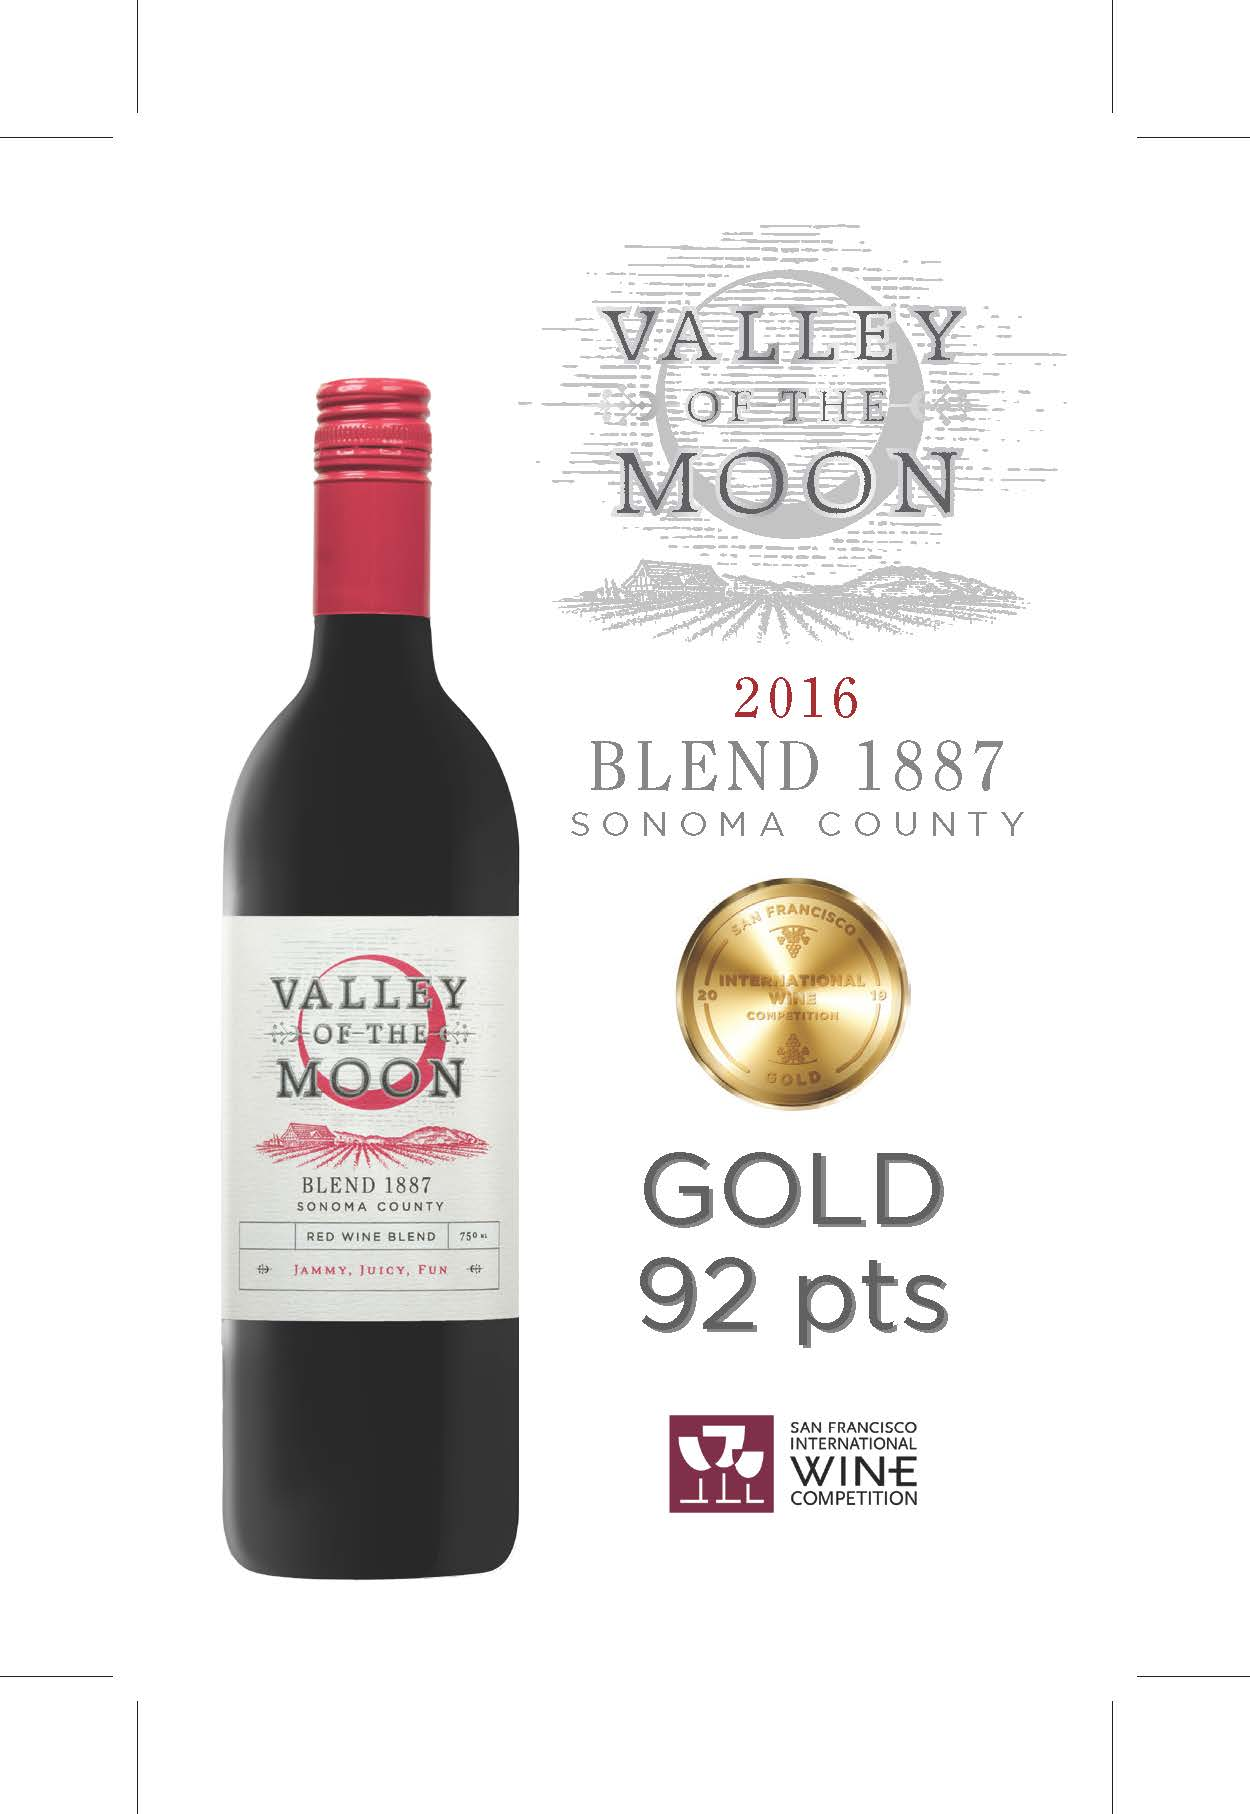 https://www.angeliniwine.com/wp-content/uploads/2020/03/VOM-2016SCVBlend1887_92-points.jpg